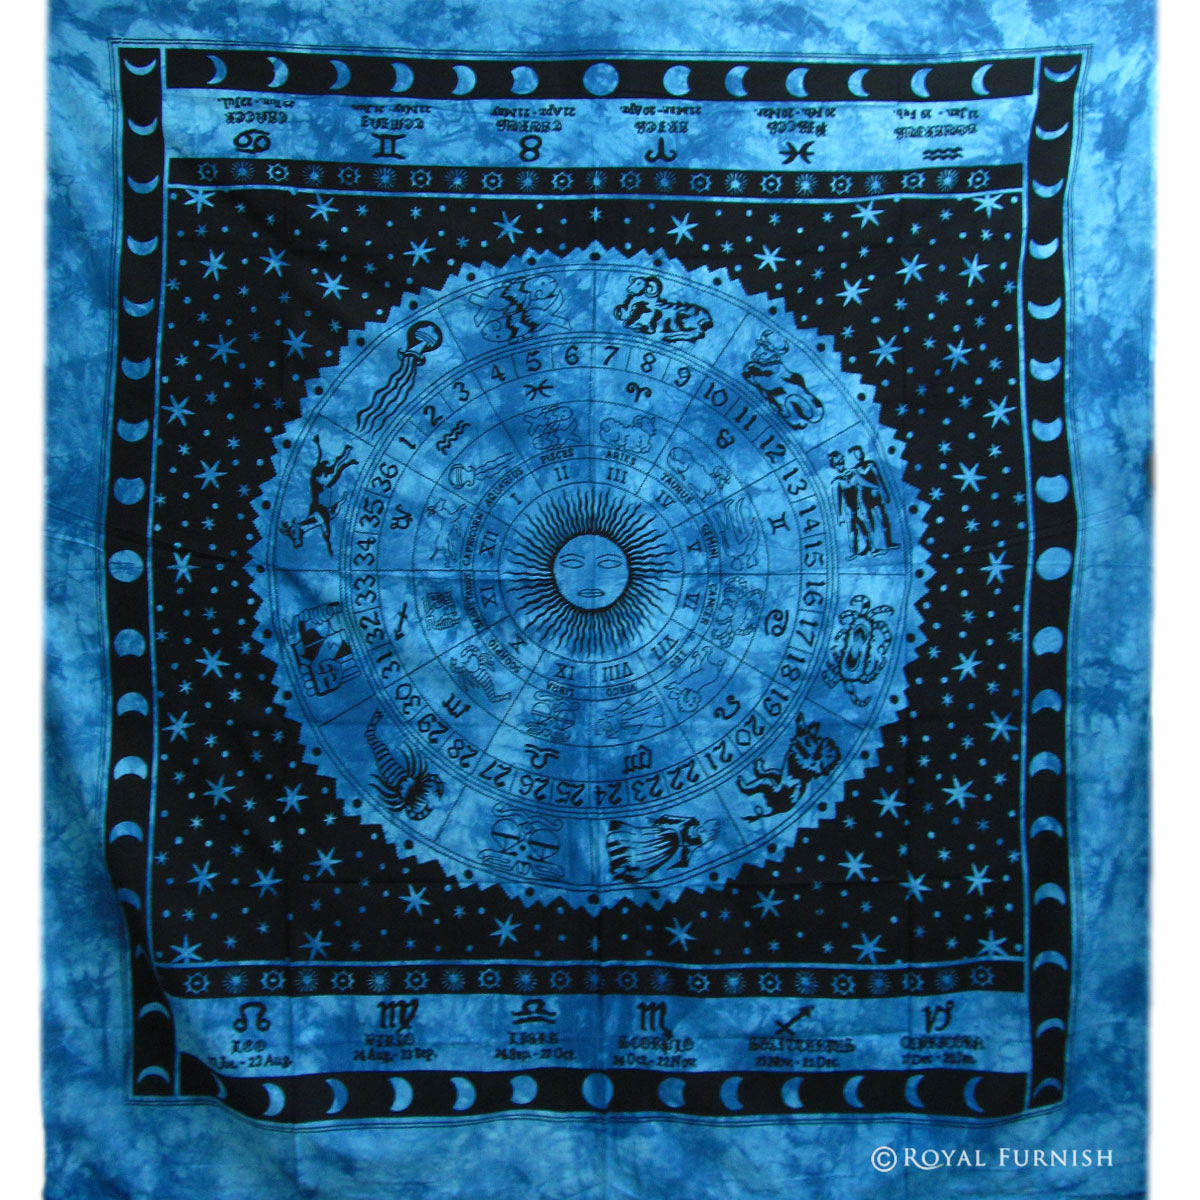 Blue Astrology Zodiac Horoscope Tie Dye Tapestry Wall Hanging Bedspread  RoyalFurnishcom